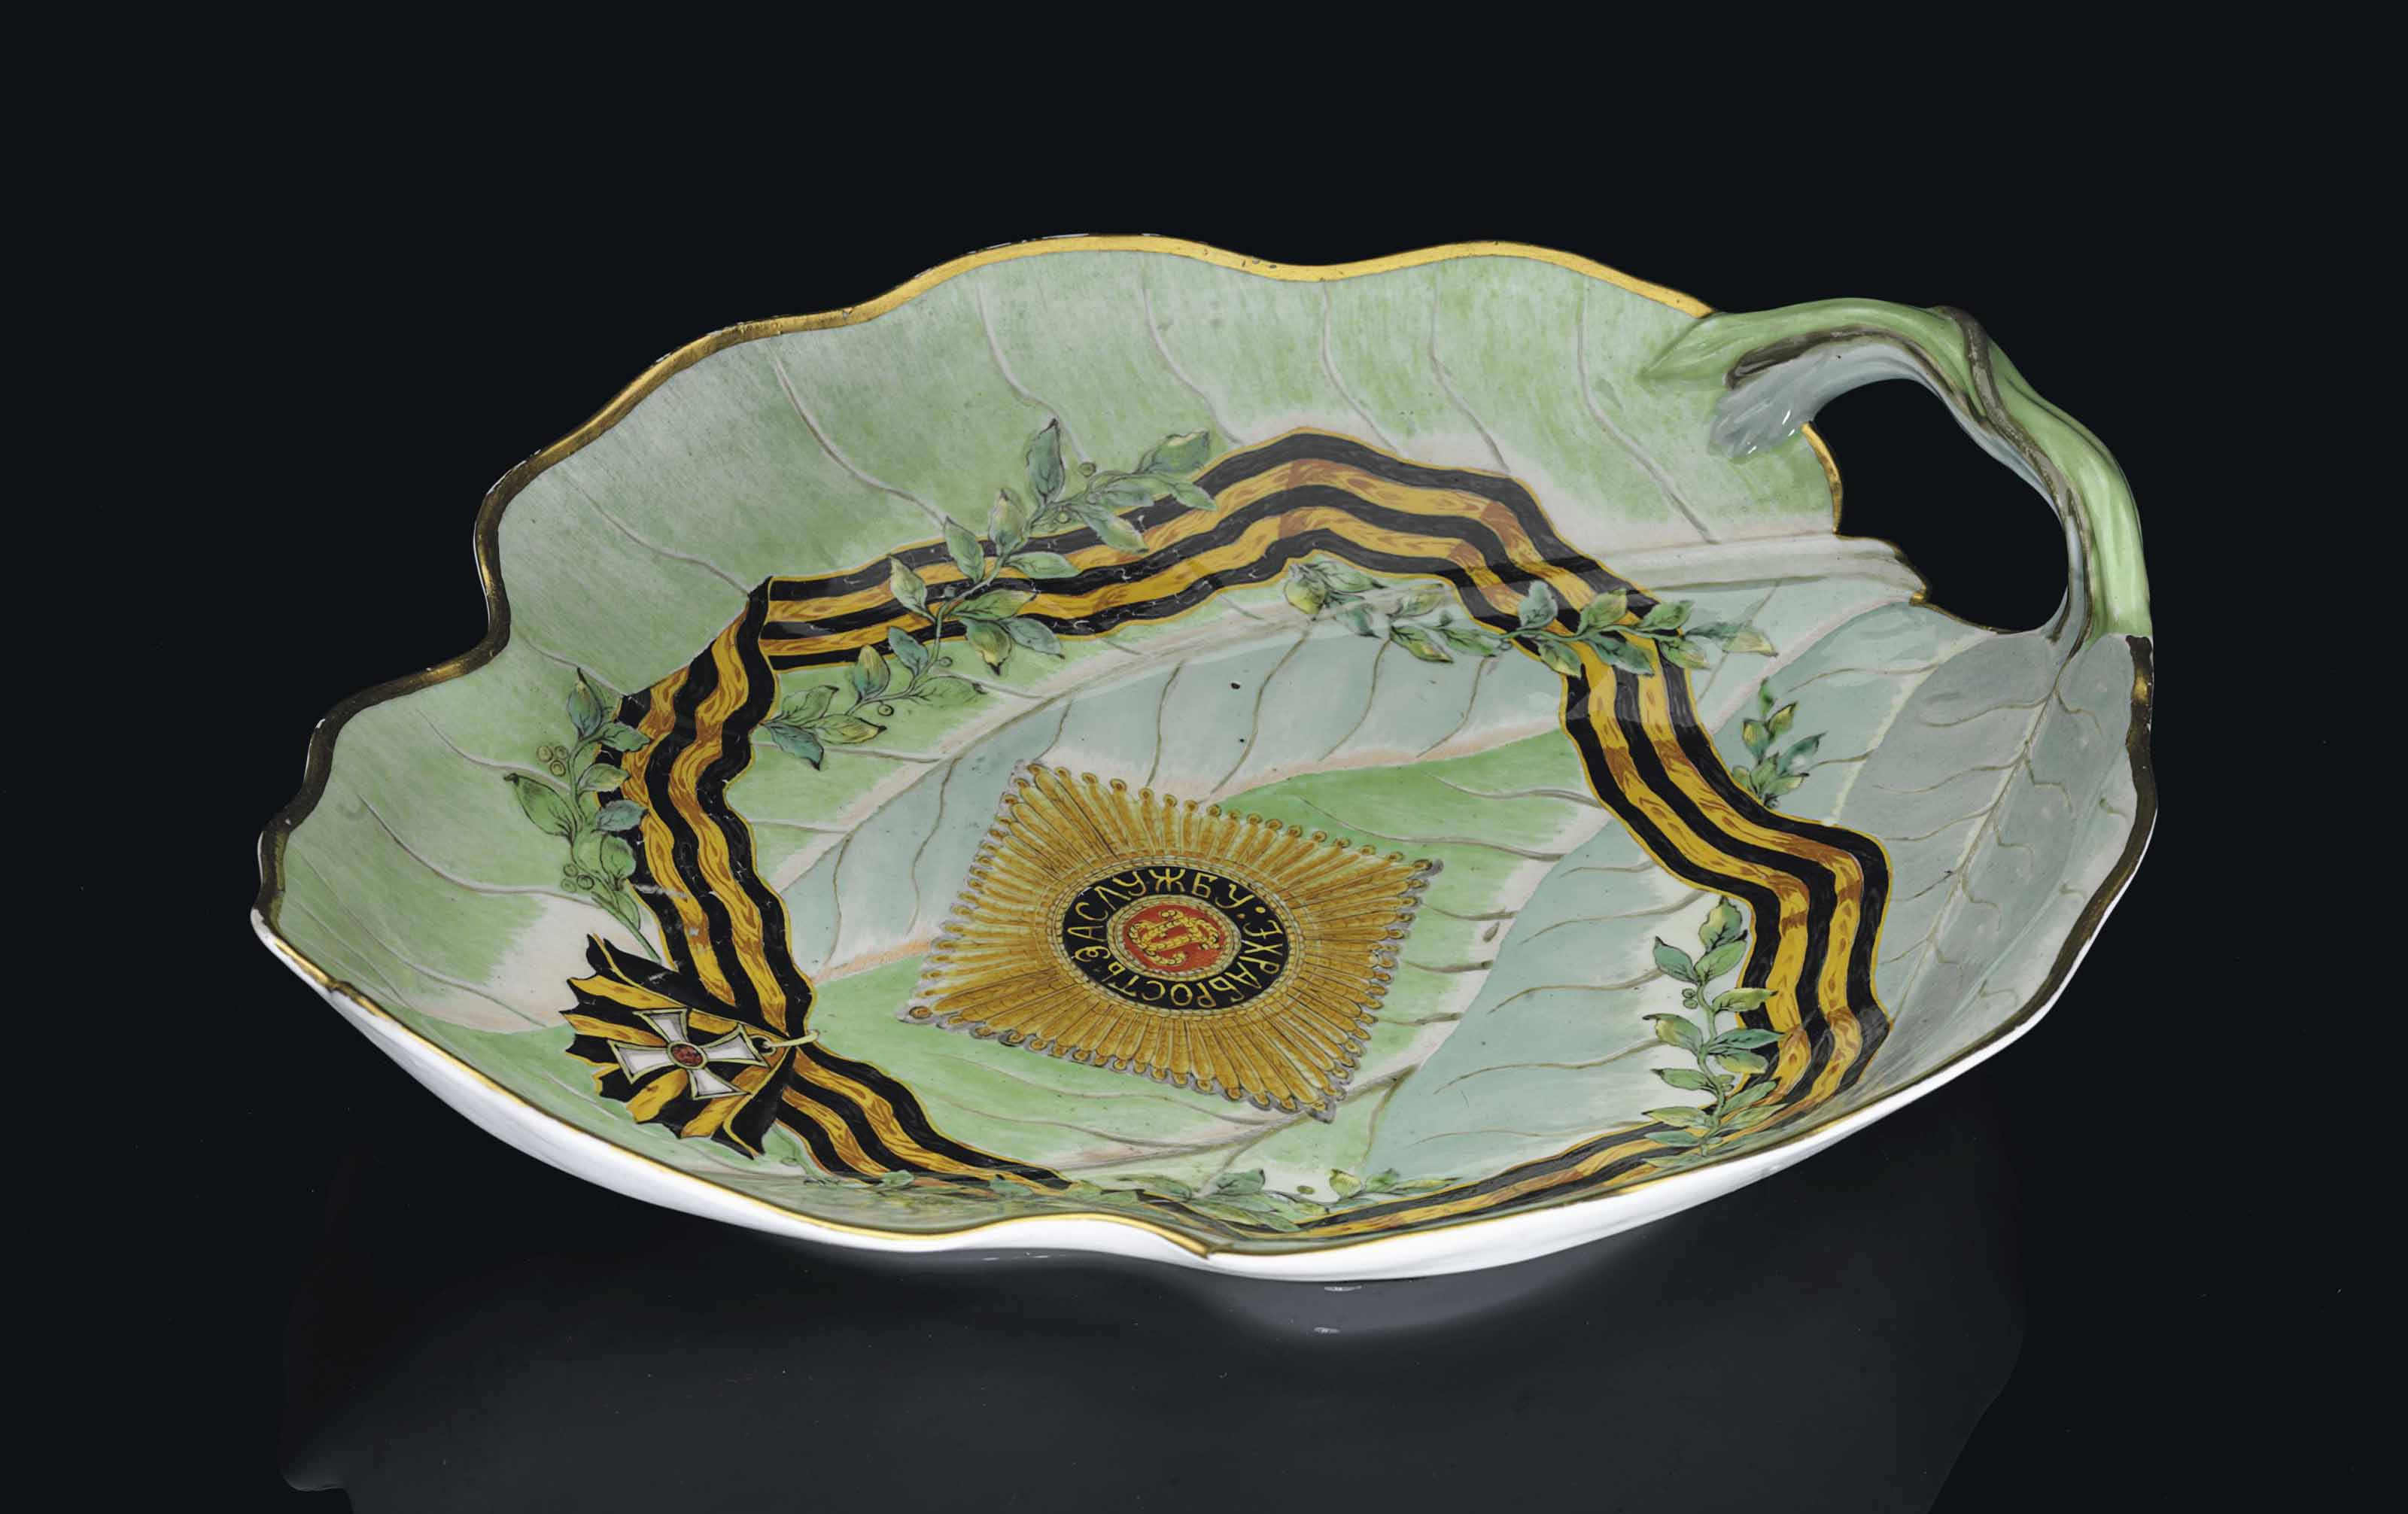 A PORCELAIN DISH FROM THE SERVICE OF THE ORDER OF ST GEORGE